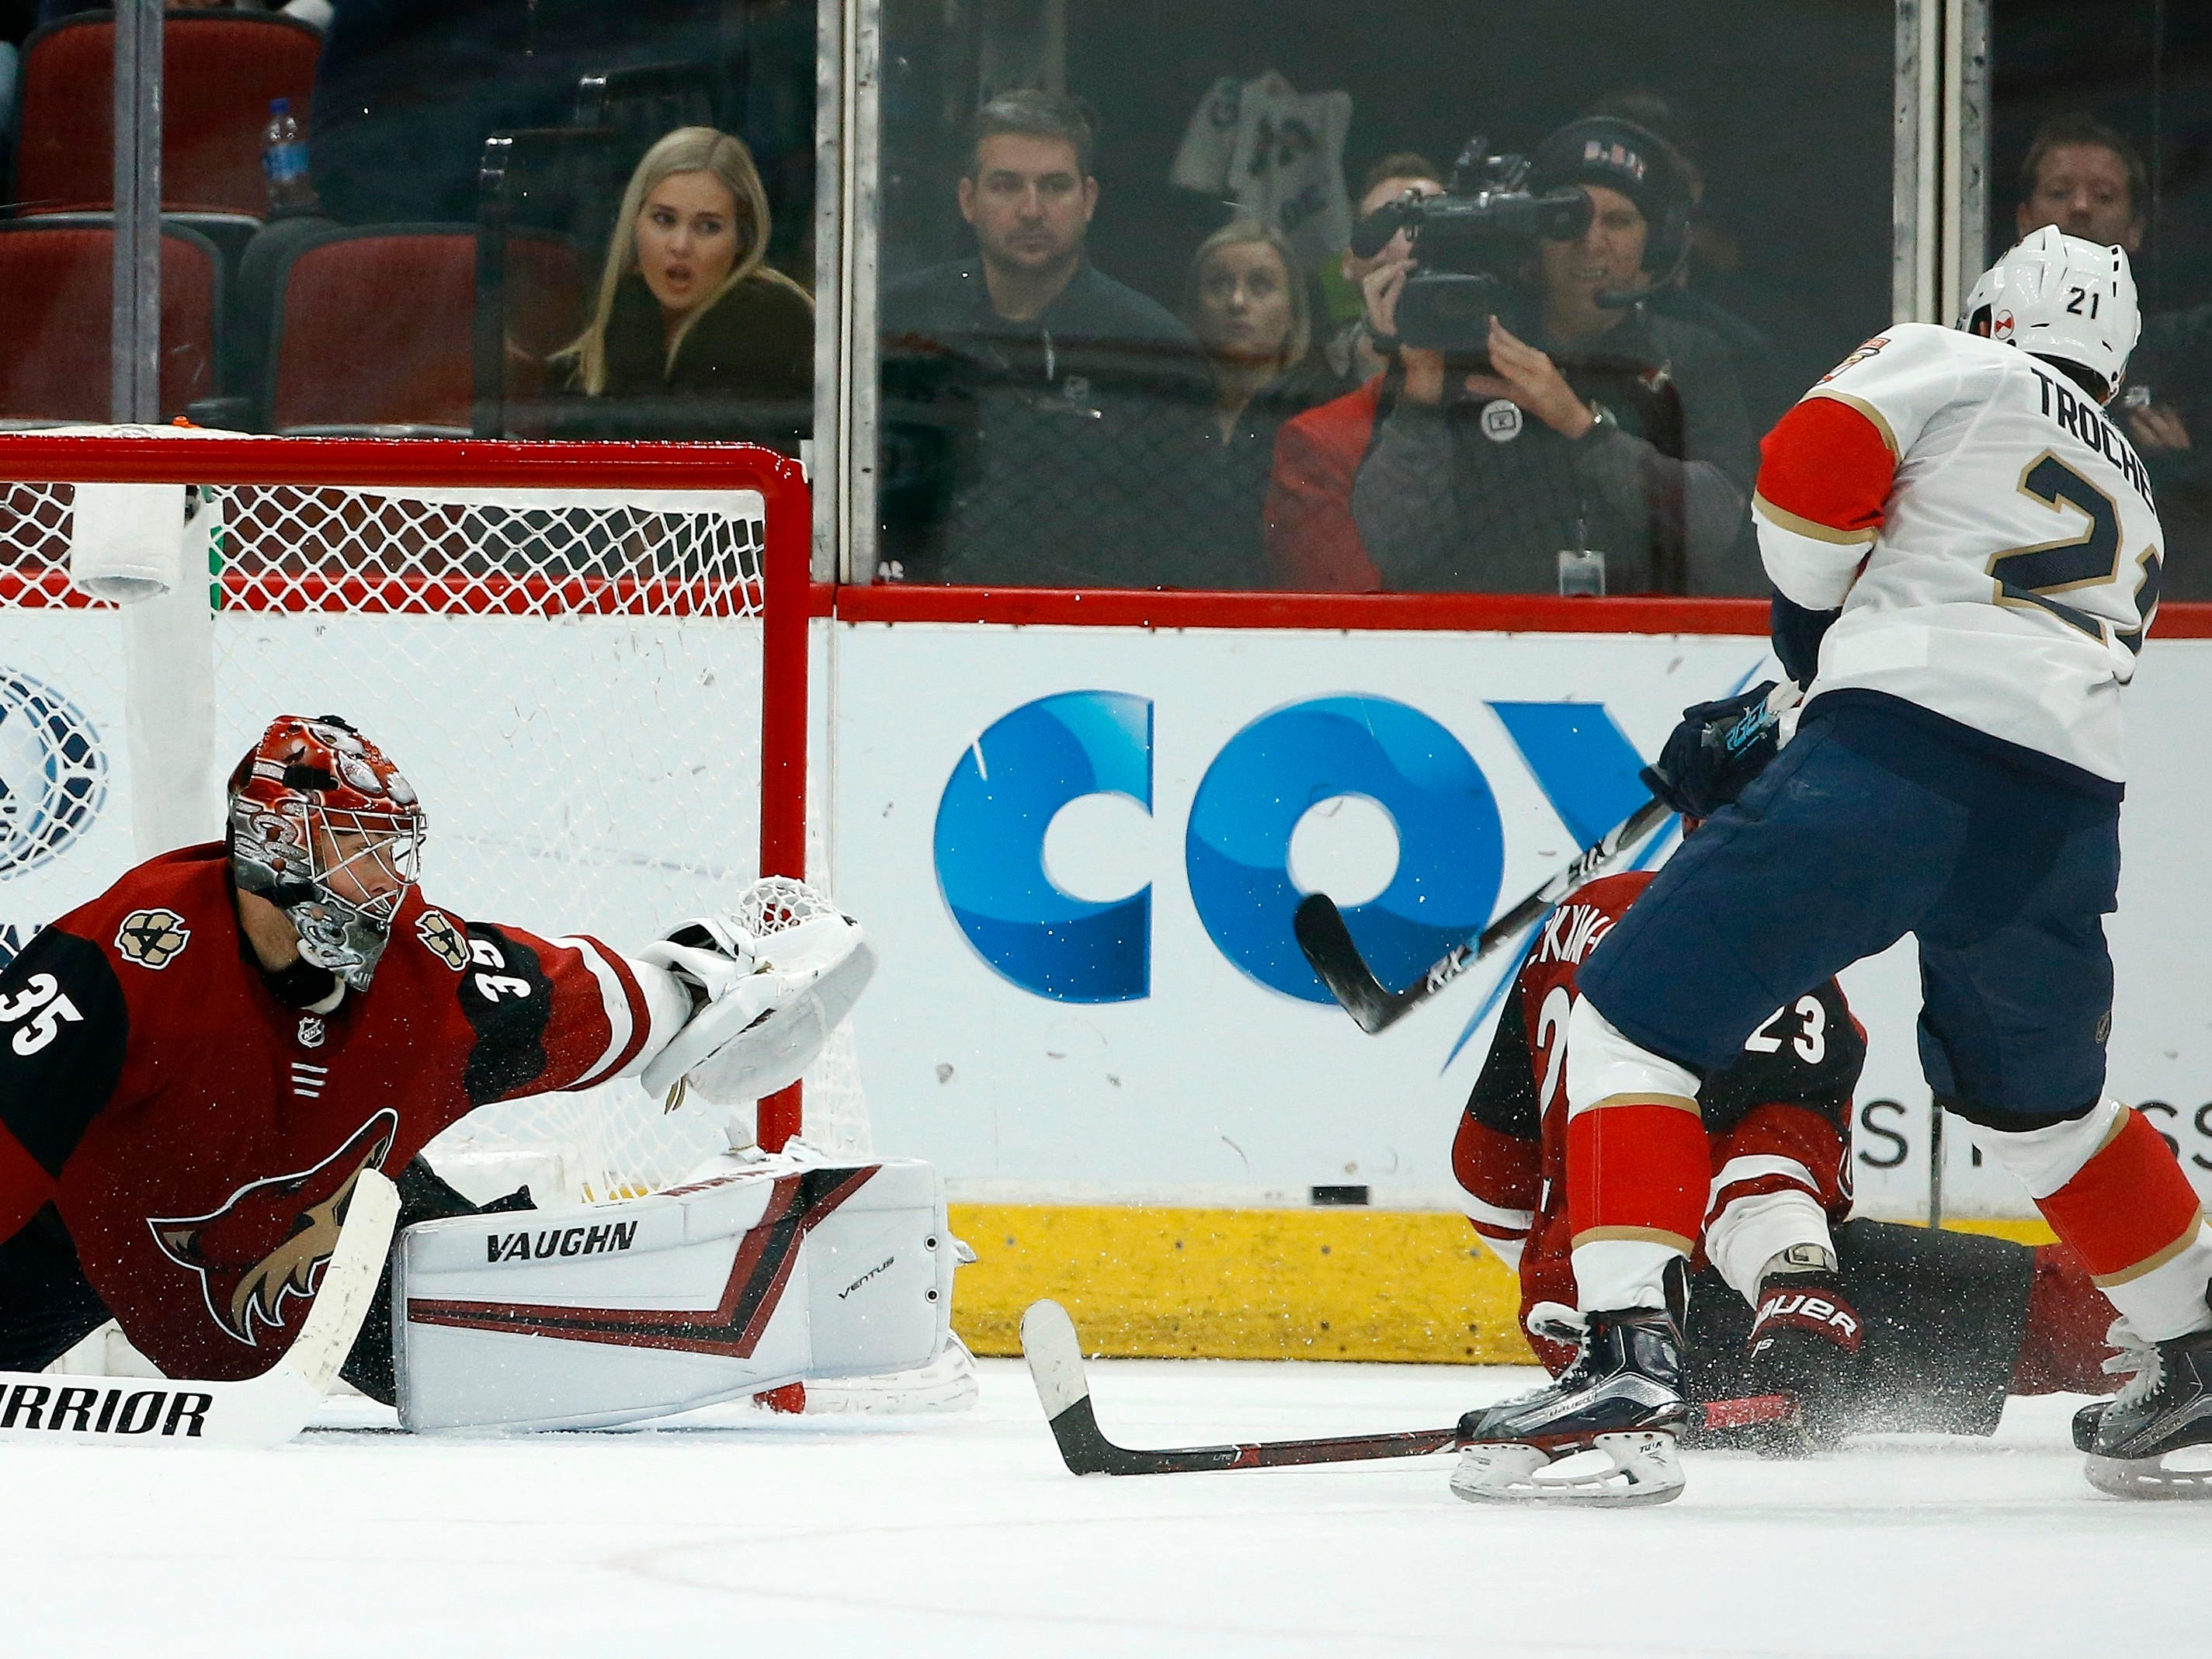 Arizona Coyotes goaltender Darcy Kuemper (35) gets some help from defenseman Oliver Ekman-Larsson (23), stopping the puck on a shot by Florida Panthers center Vincent Trocheck (21) during overtime in an NHL hockey game Tuesday, Feb. 26, 2019, in Glendale, Ariz. The Coyotes won 4-3 in a shootout.